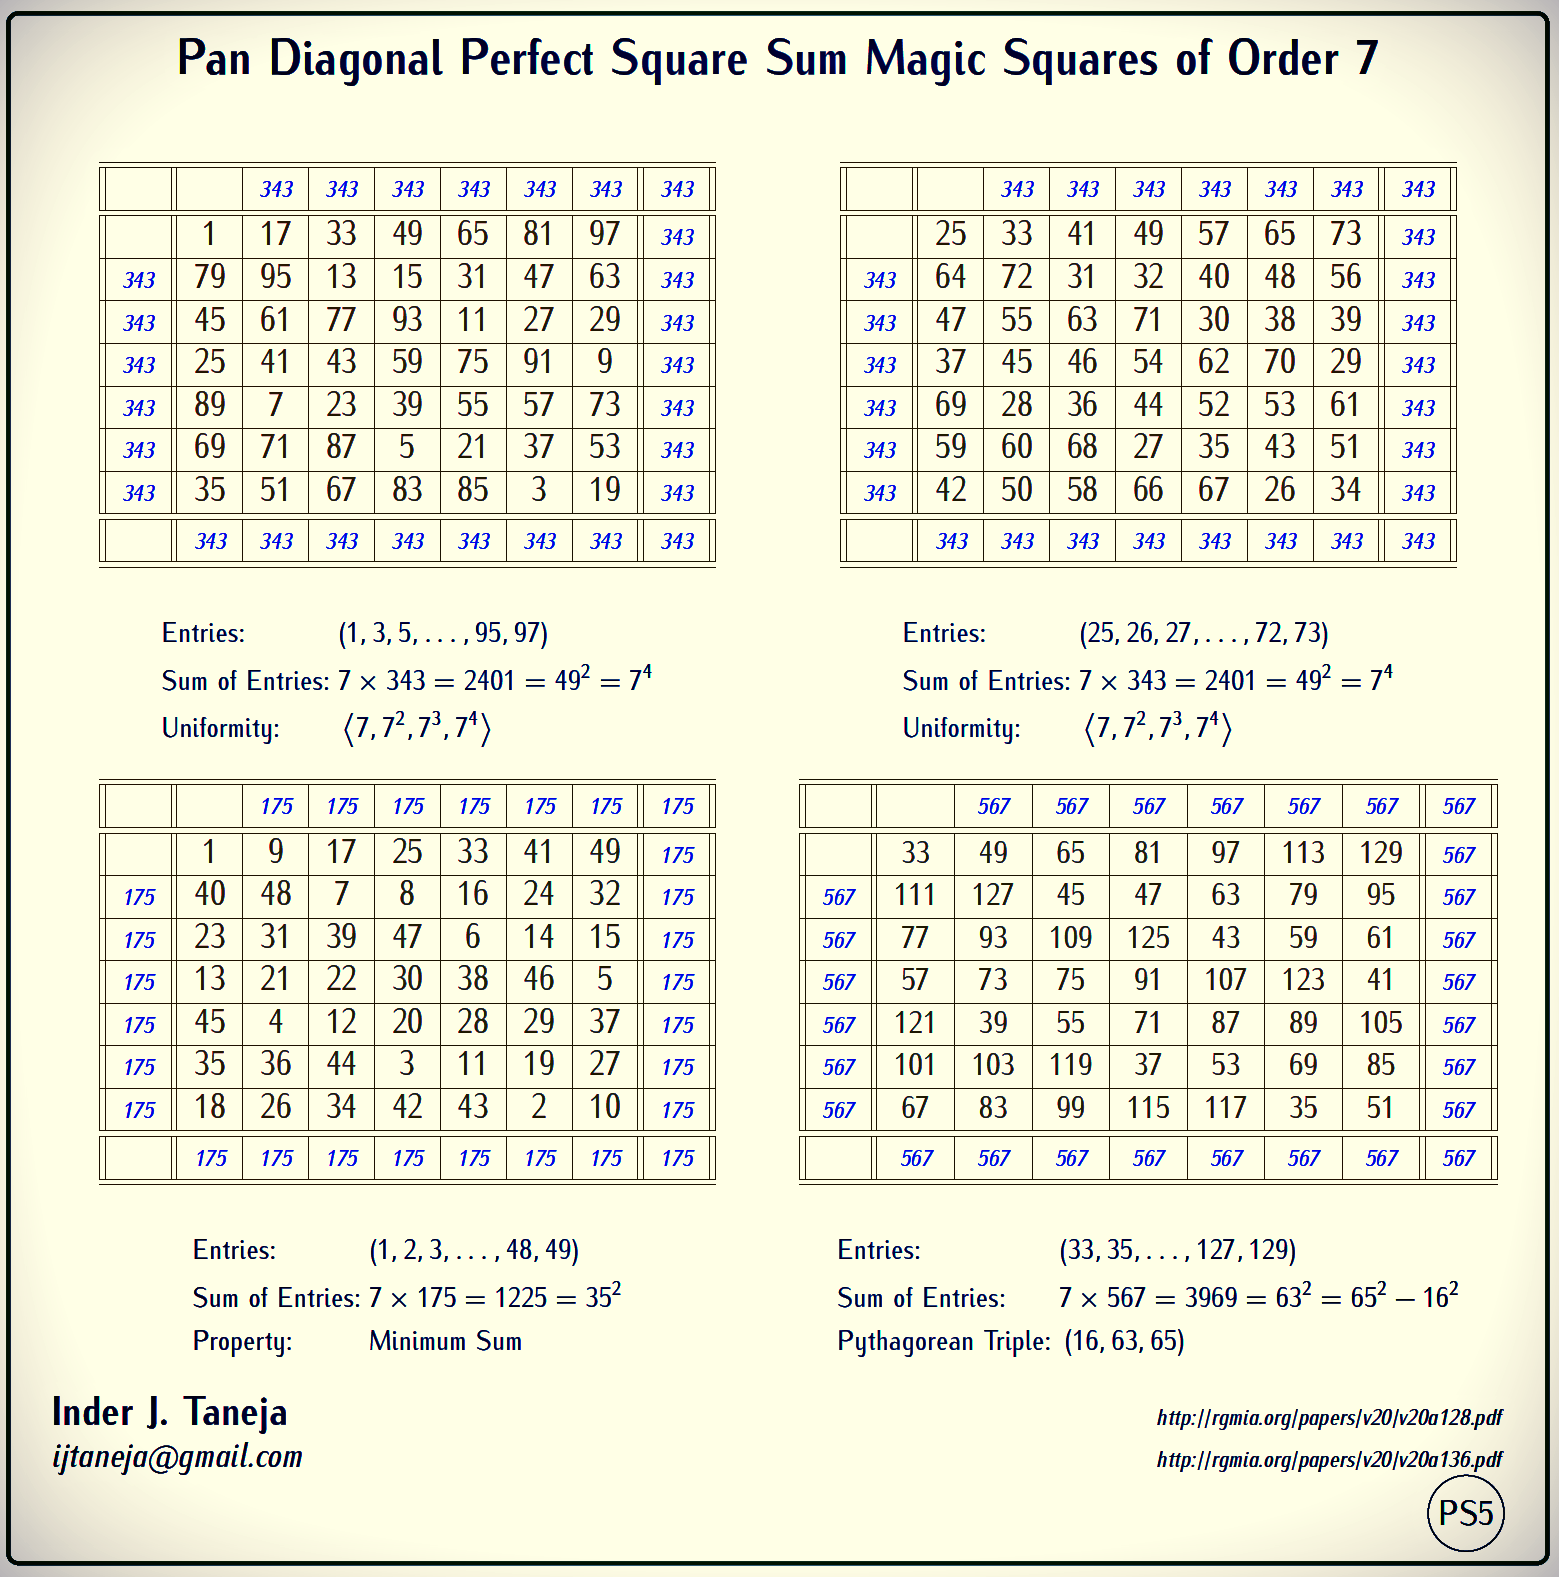 What does the magic square consist of and how does it work